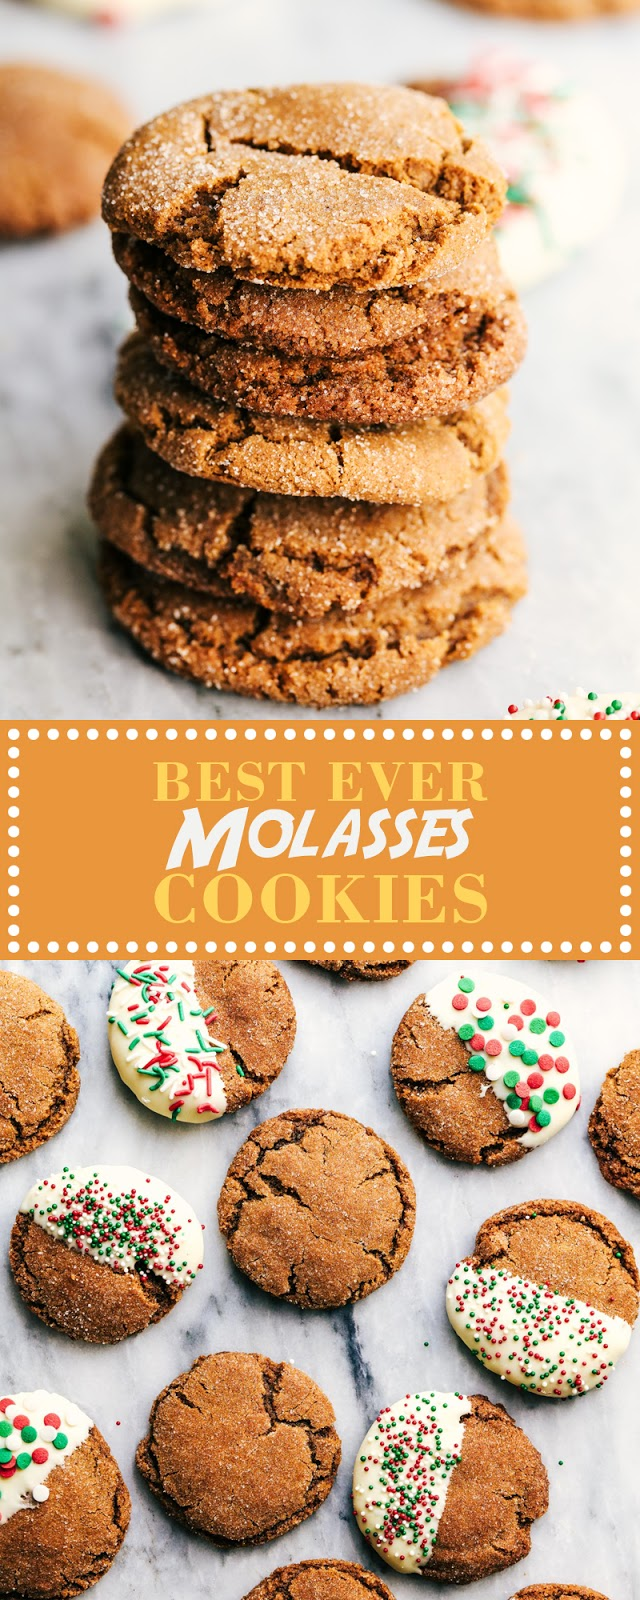 BEST EVER MOLASSES COOKIES